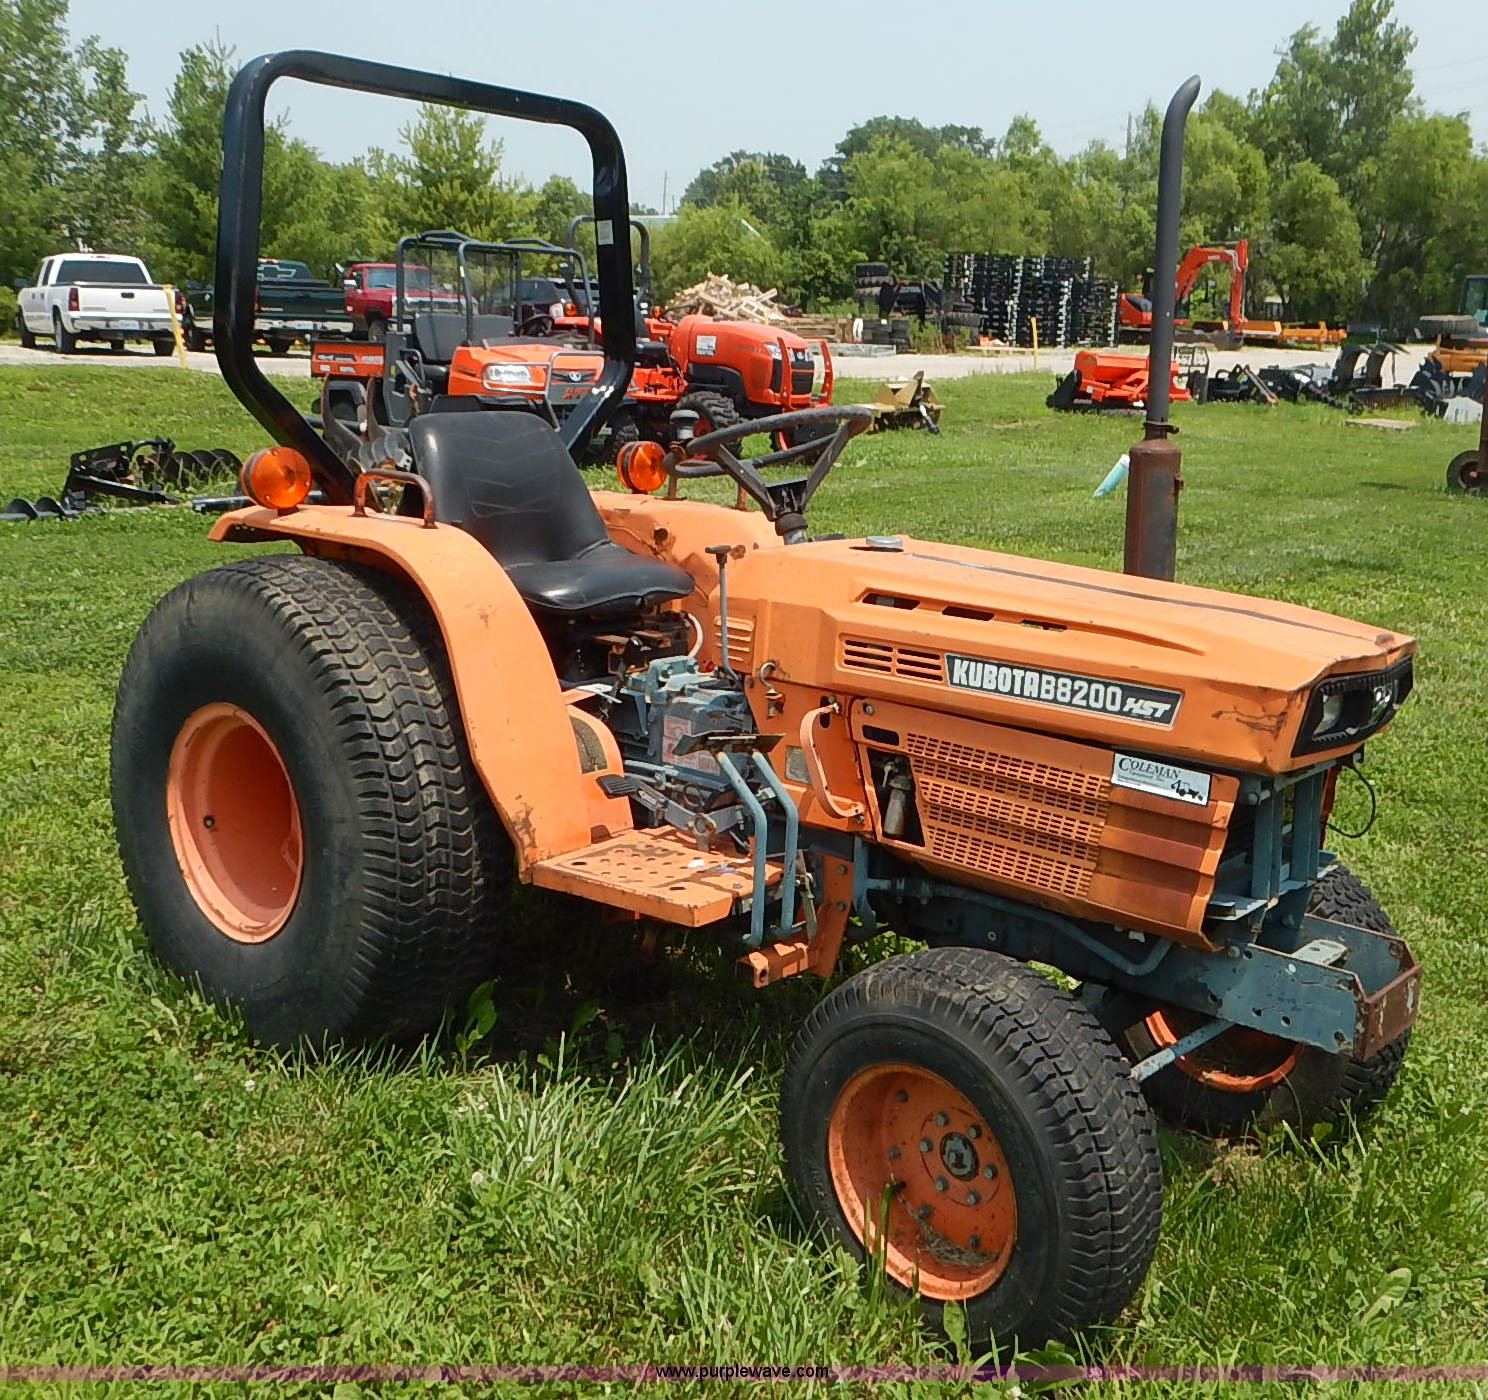 Used Backhoe Seats : Used construction agricultural equip trucks trailers